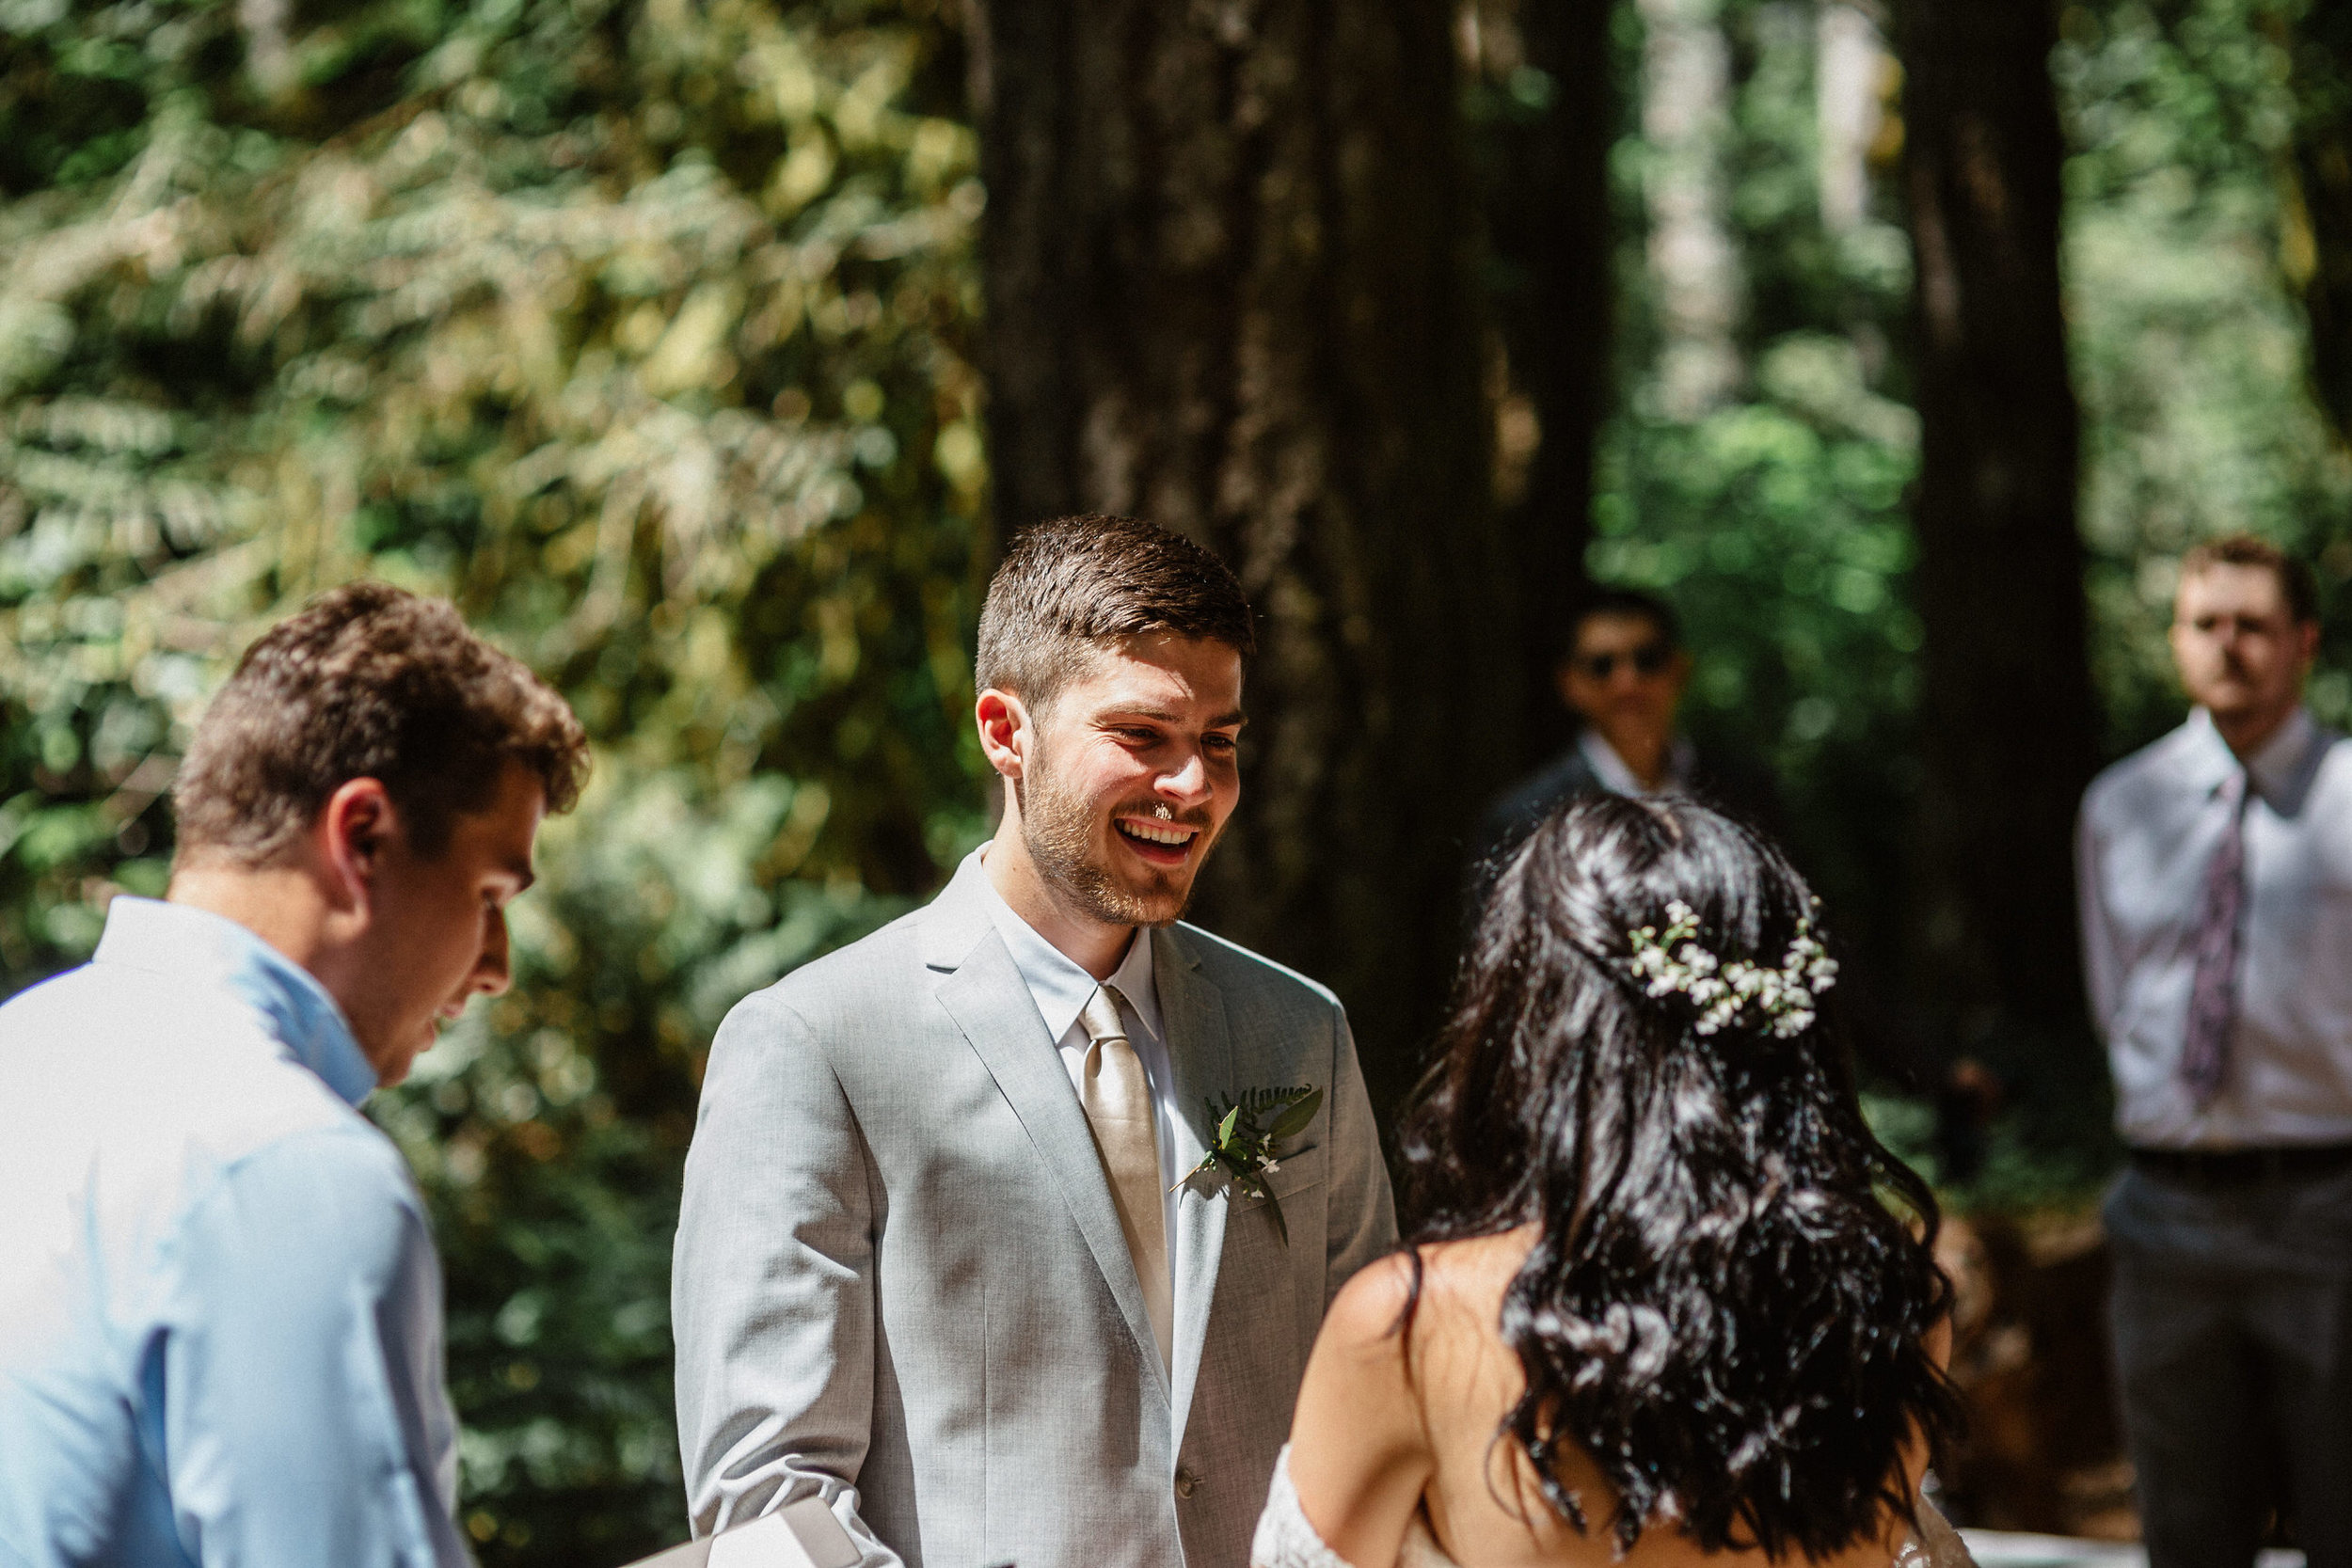 MT Hood Wildwood elopement wedding oregon portland photography0025.JPG